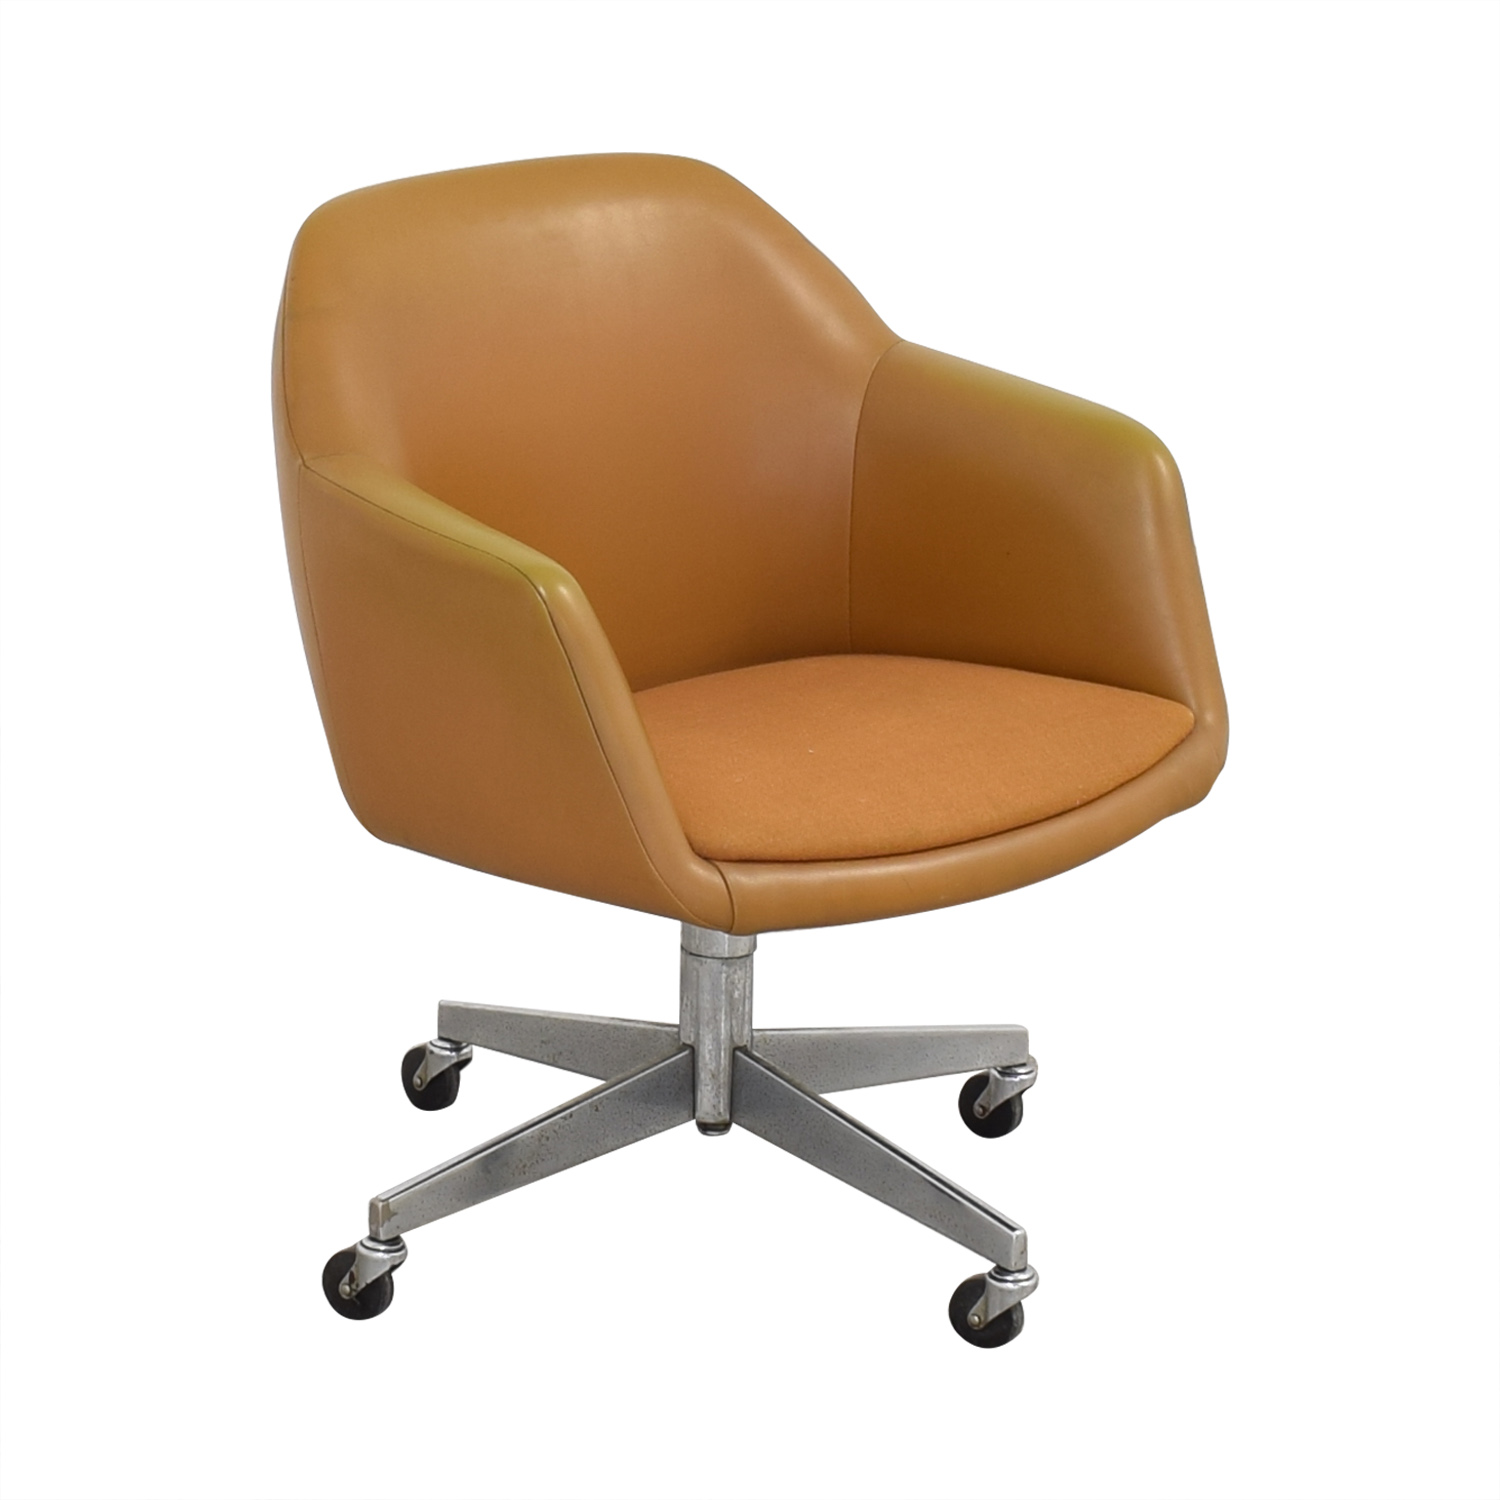 Steelcase Steelcase Mid Century Office Chair second hand